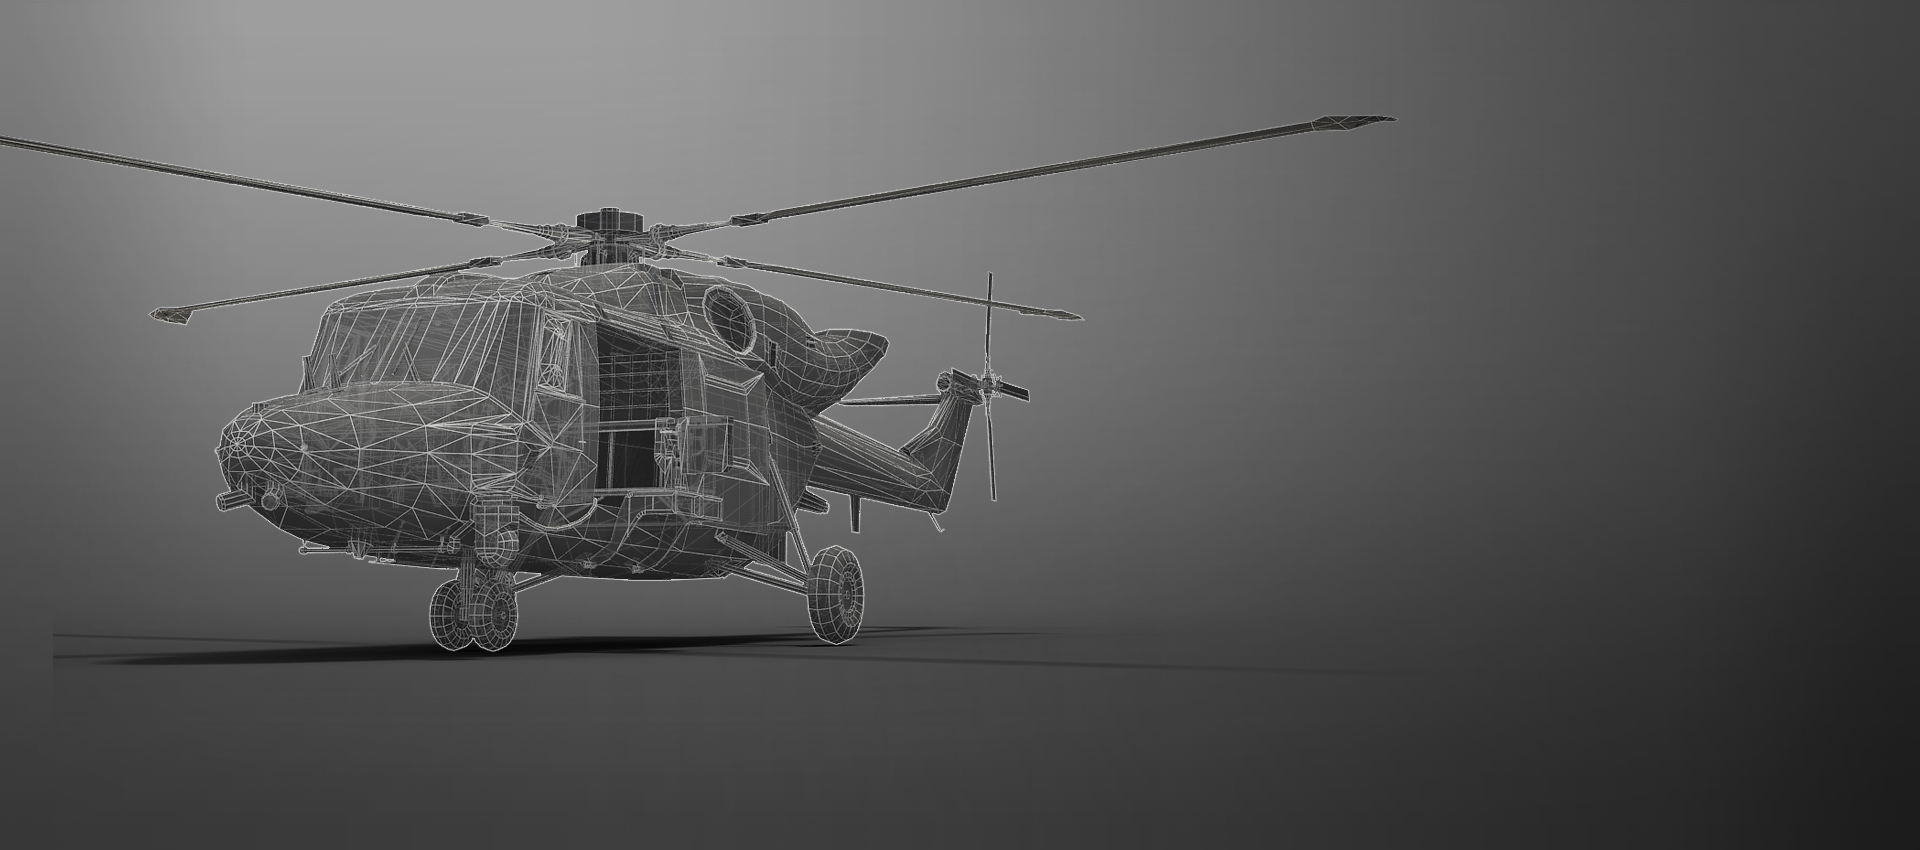 Lynx Helicopter in wireframe